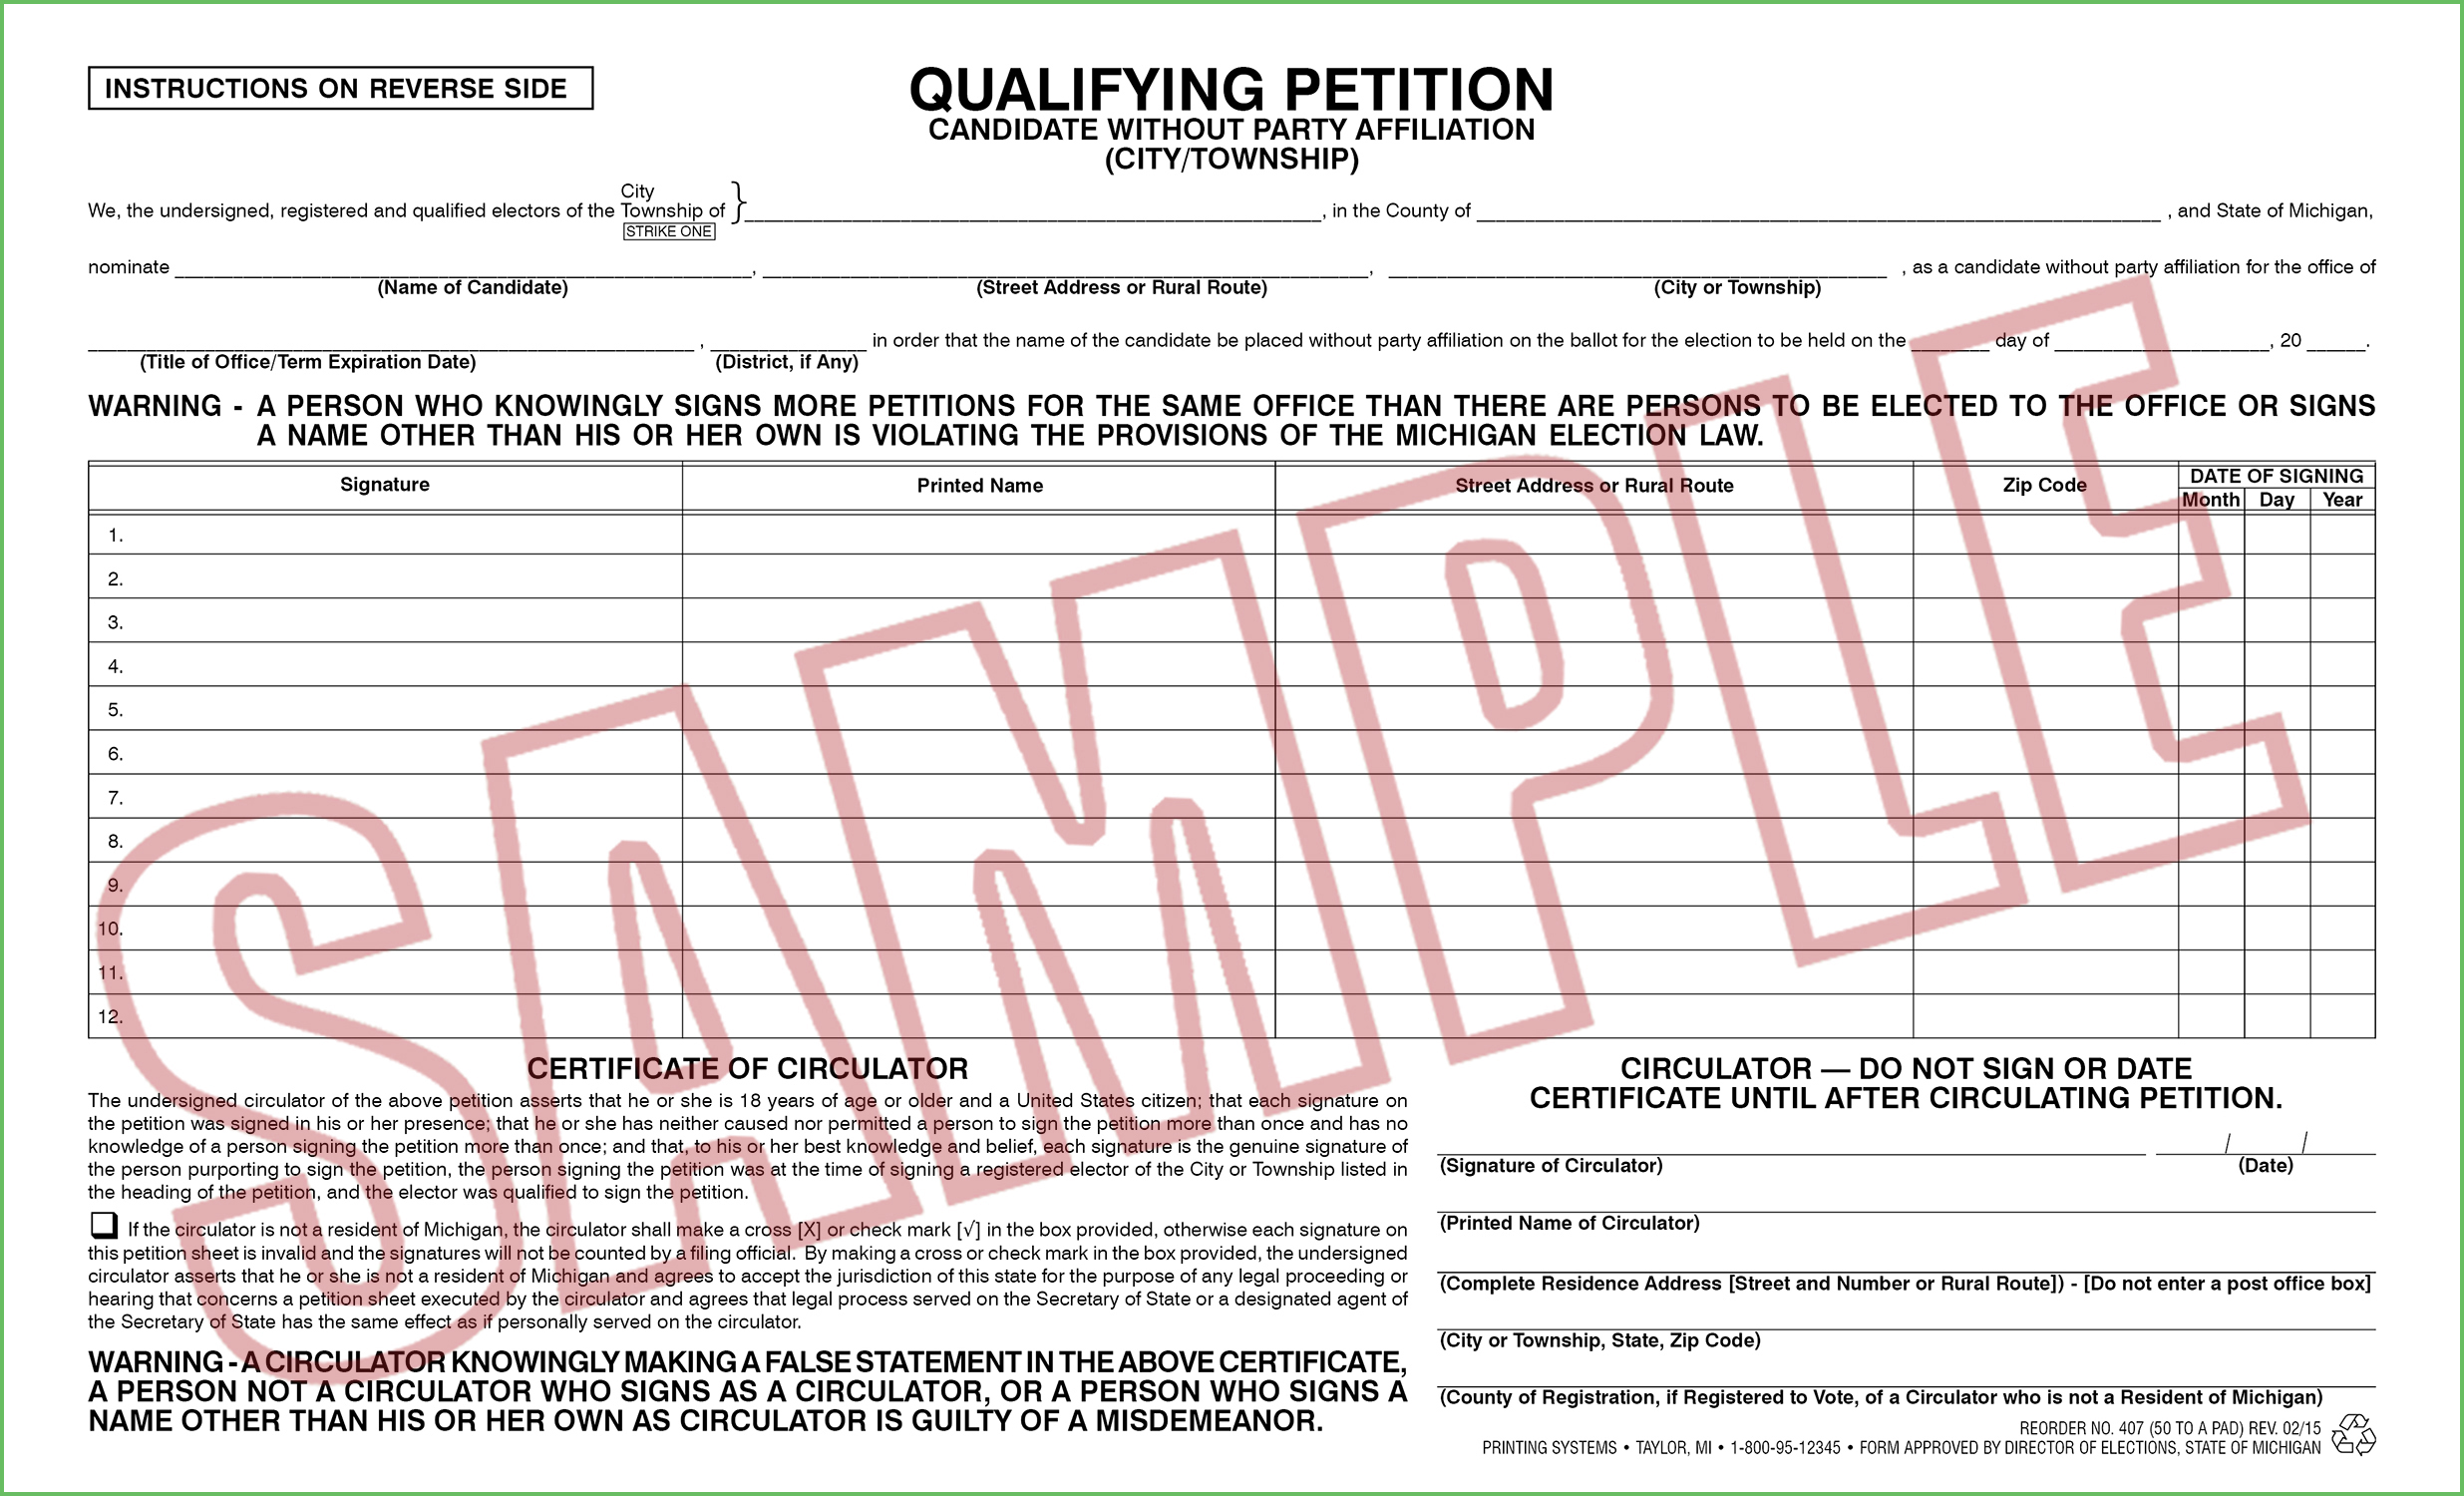 407 Qualifying Petition (Ci/Twp) Candidate w/o Party Affiliation (50 per pad) Rev. 02/15